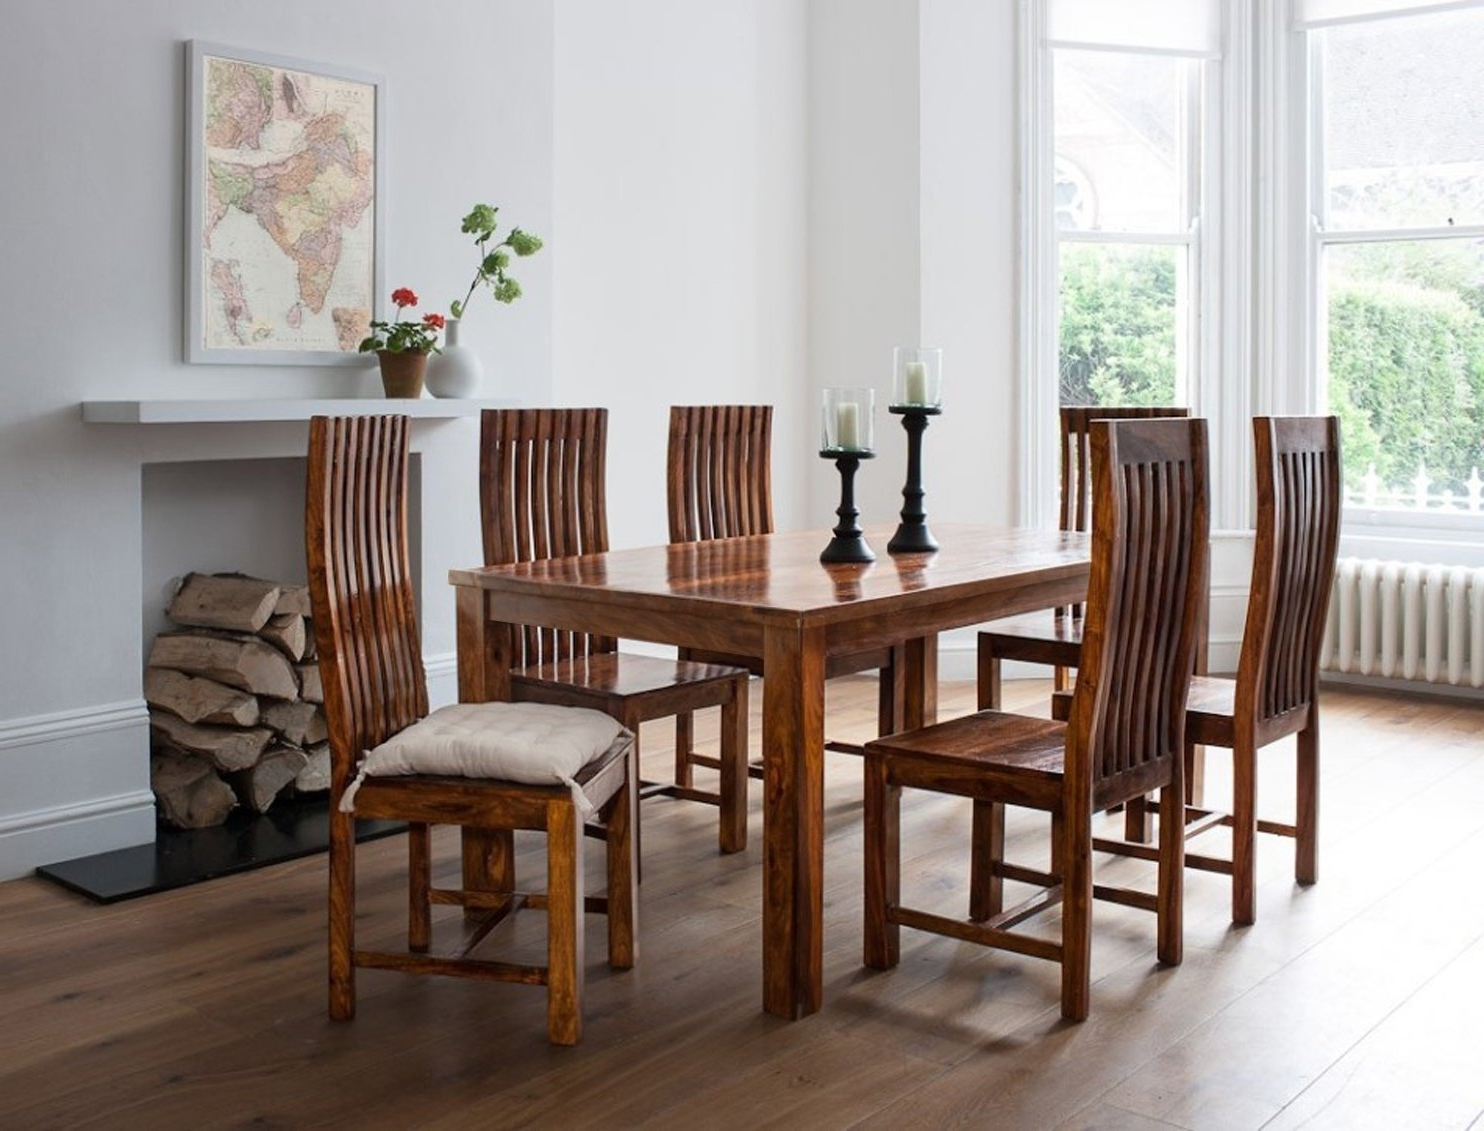 Most Recently Released 6 Seater Dining Tables Regarding Lifeestyle Handcrafted Sheesham Wood 6 Seater Dining Set (Honey (View 20 of 25)